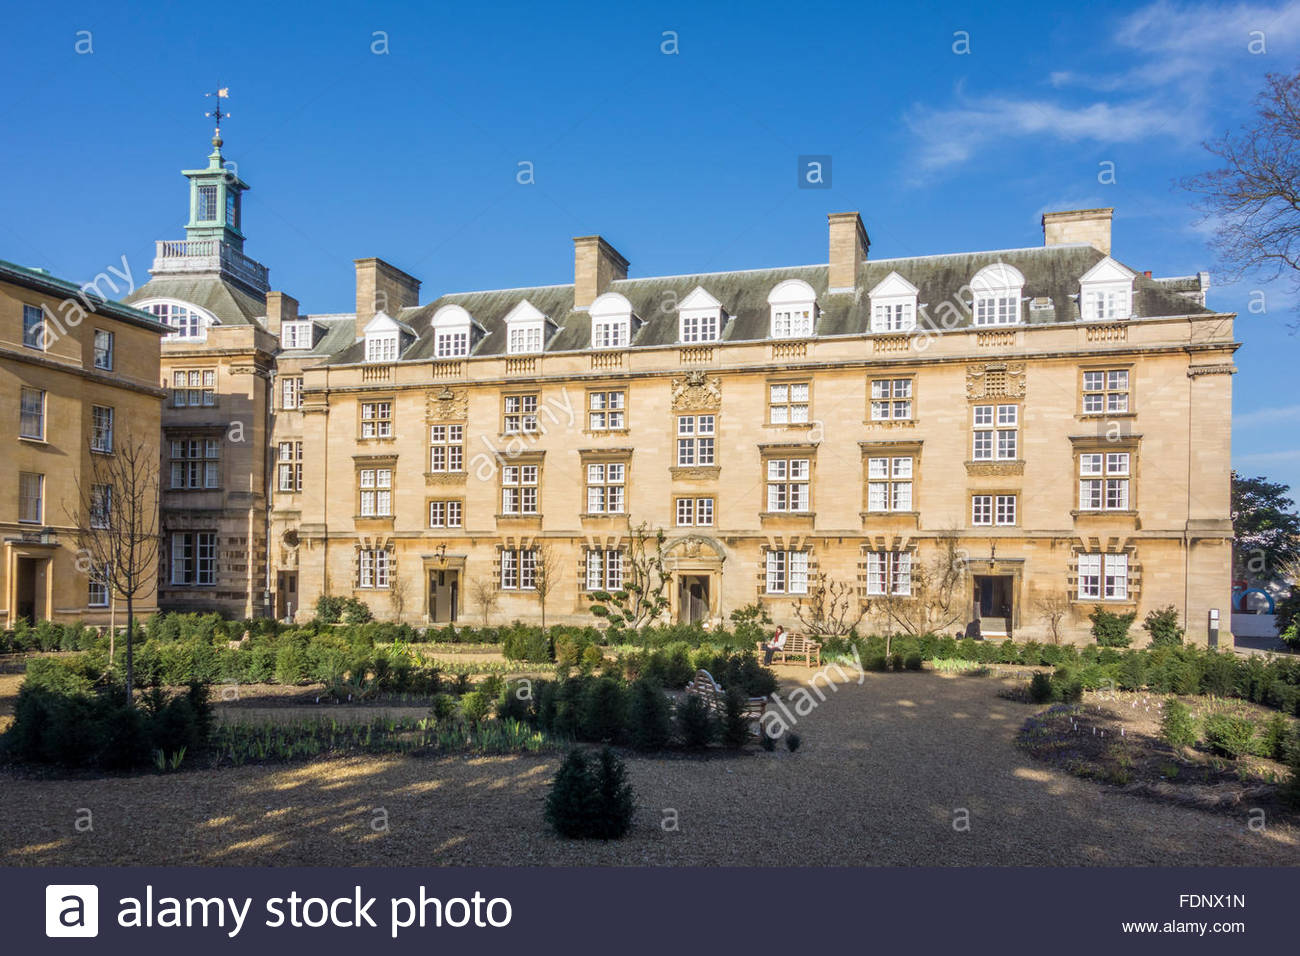 Third Court at Christ's College, Cambridge in the winter sunshine with a bright blue sky - Stock Image